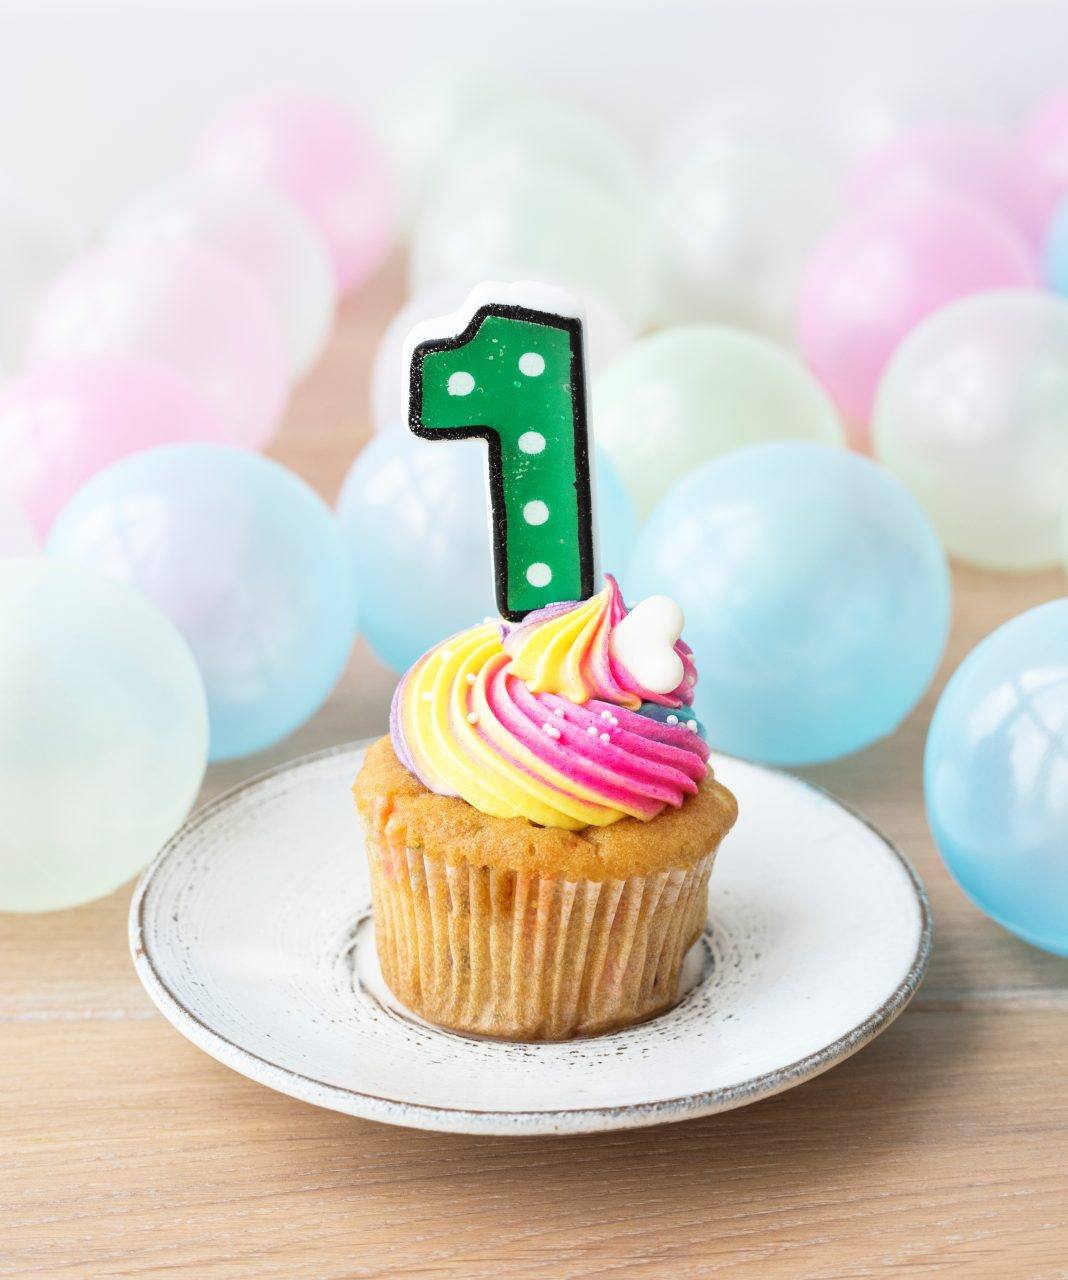 Sturminster Newton-The Community Chest is One year Old!